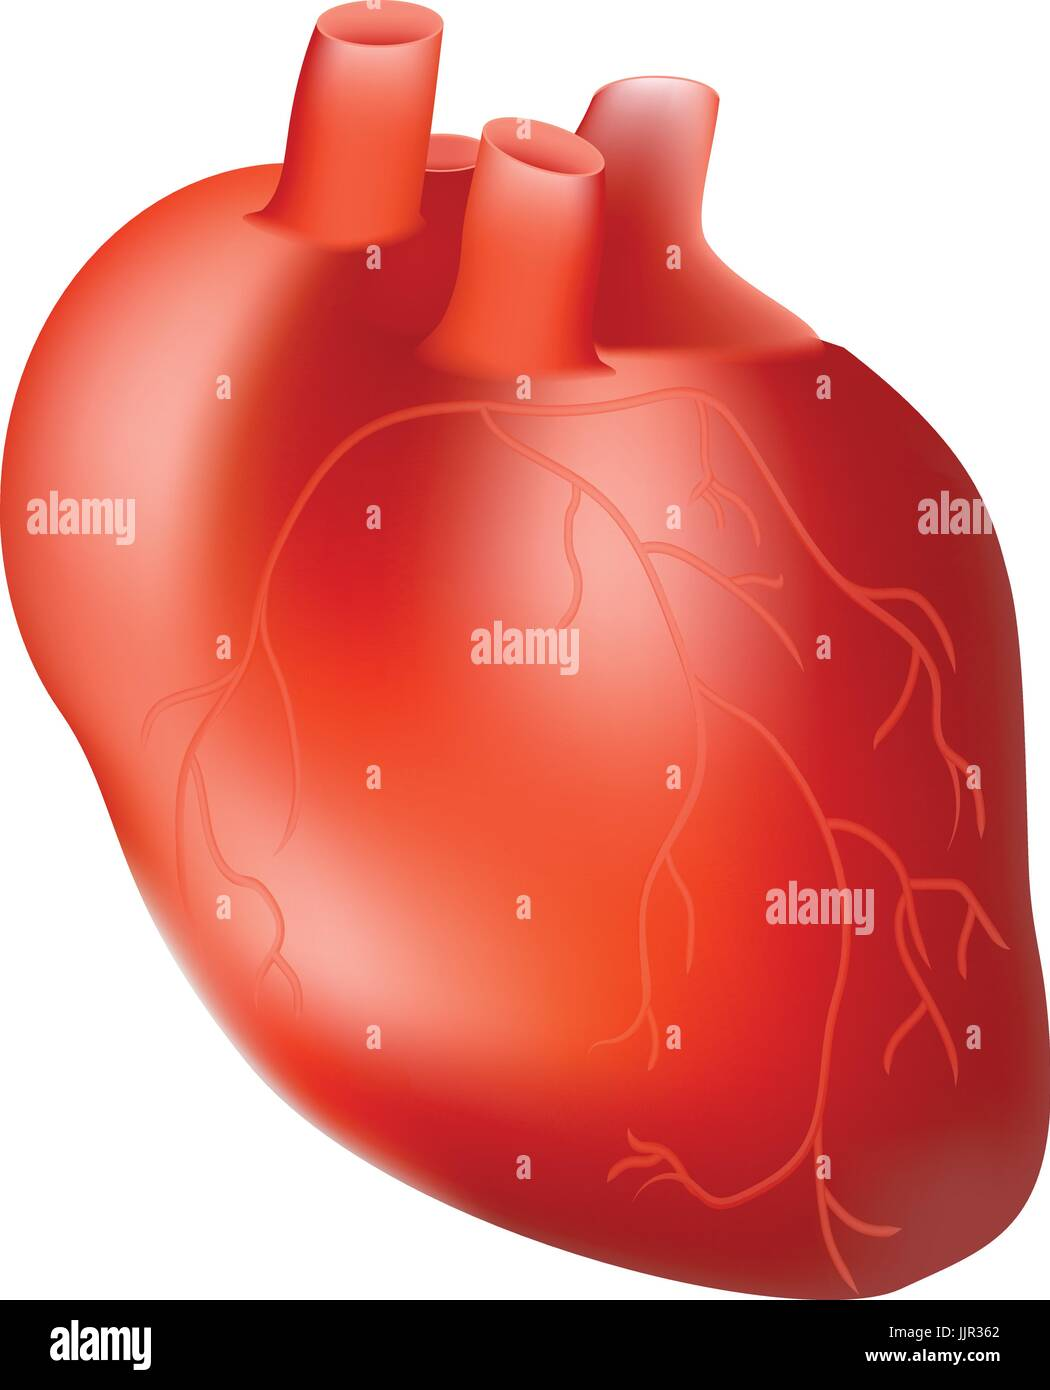 Human heart internal organ anatomy concept isolated on a white human heart internal organ anatomy concept isolated on a white background realistic vector illustration ccuart Gallery